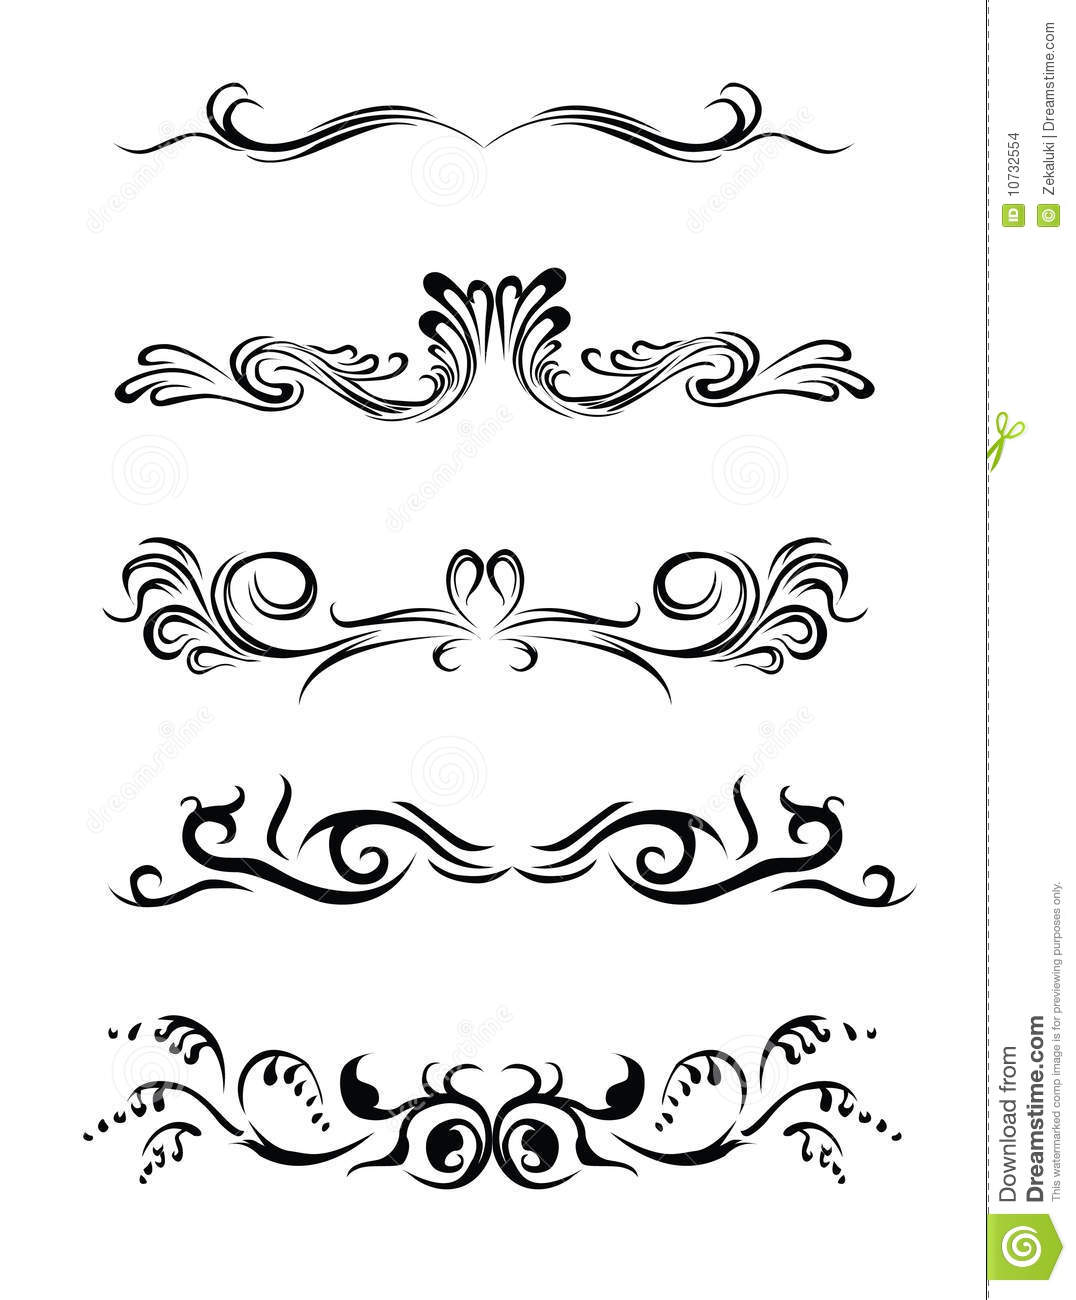 lines. design elements of different styles. stock images - image